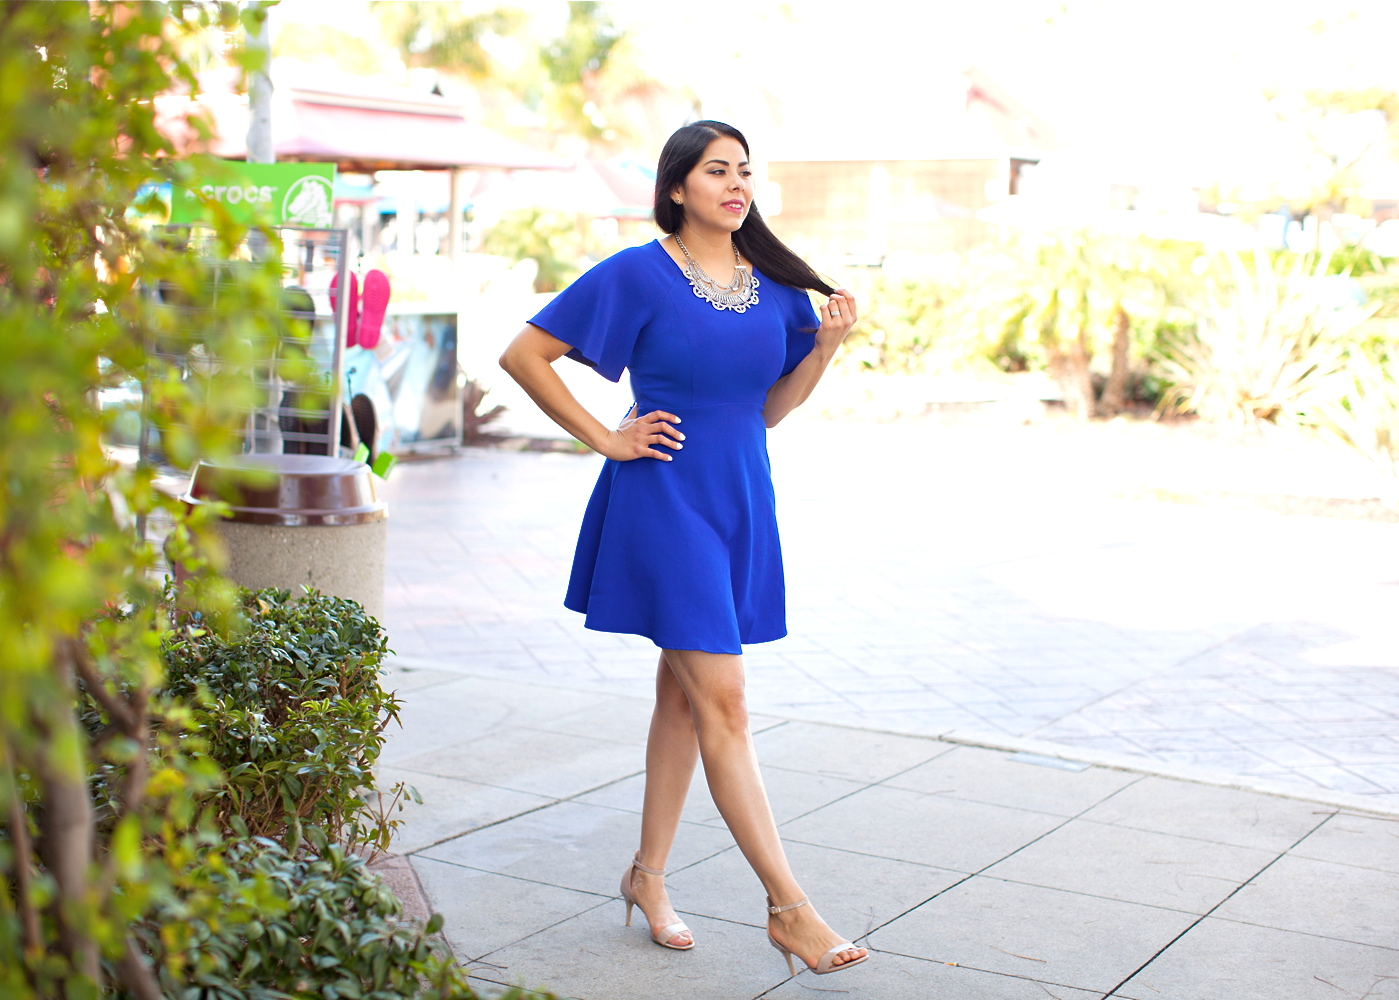 Blue Dress for night out, miss match sd blogger, brunette blogger, latina blogger, what to wear to a spring wedding